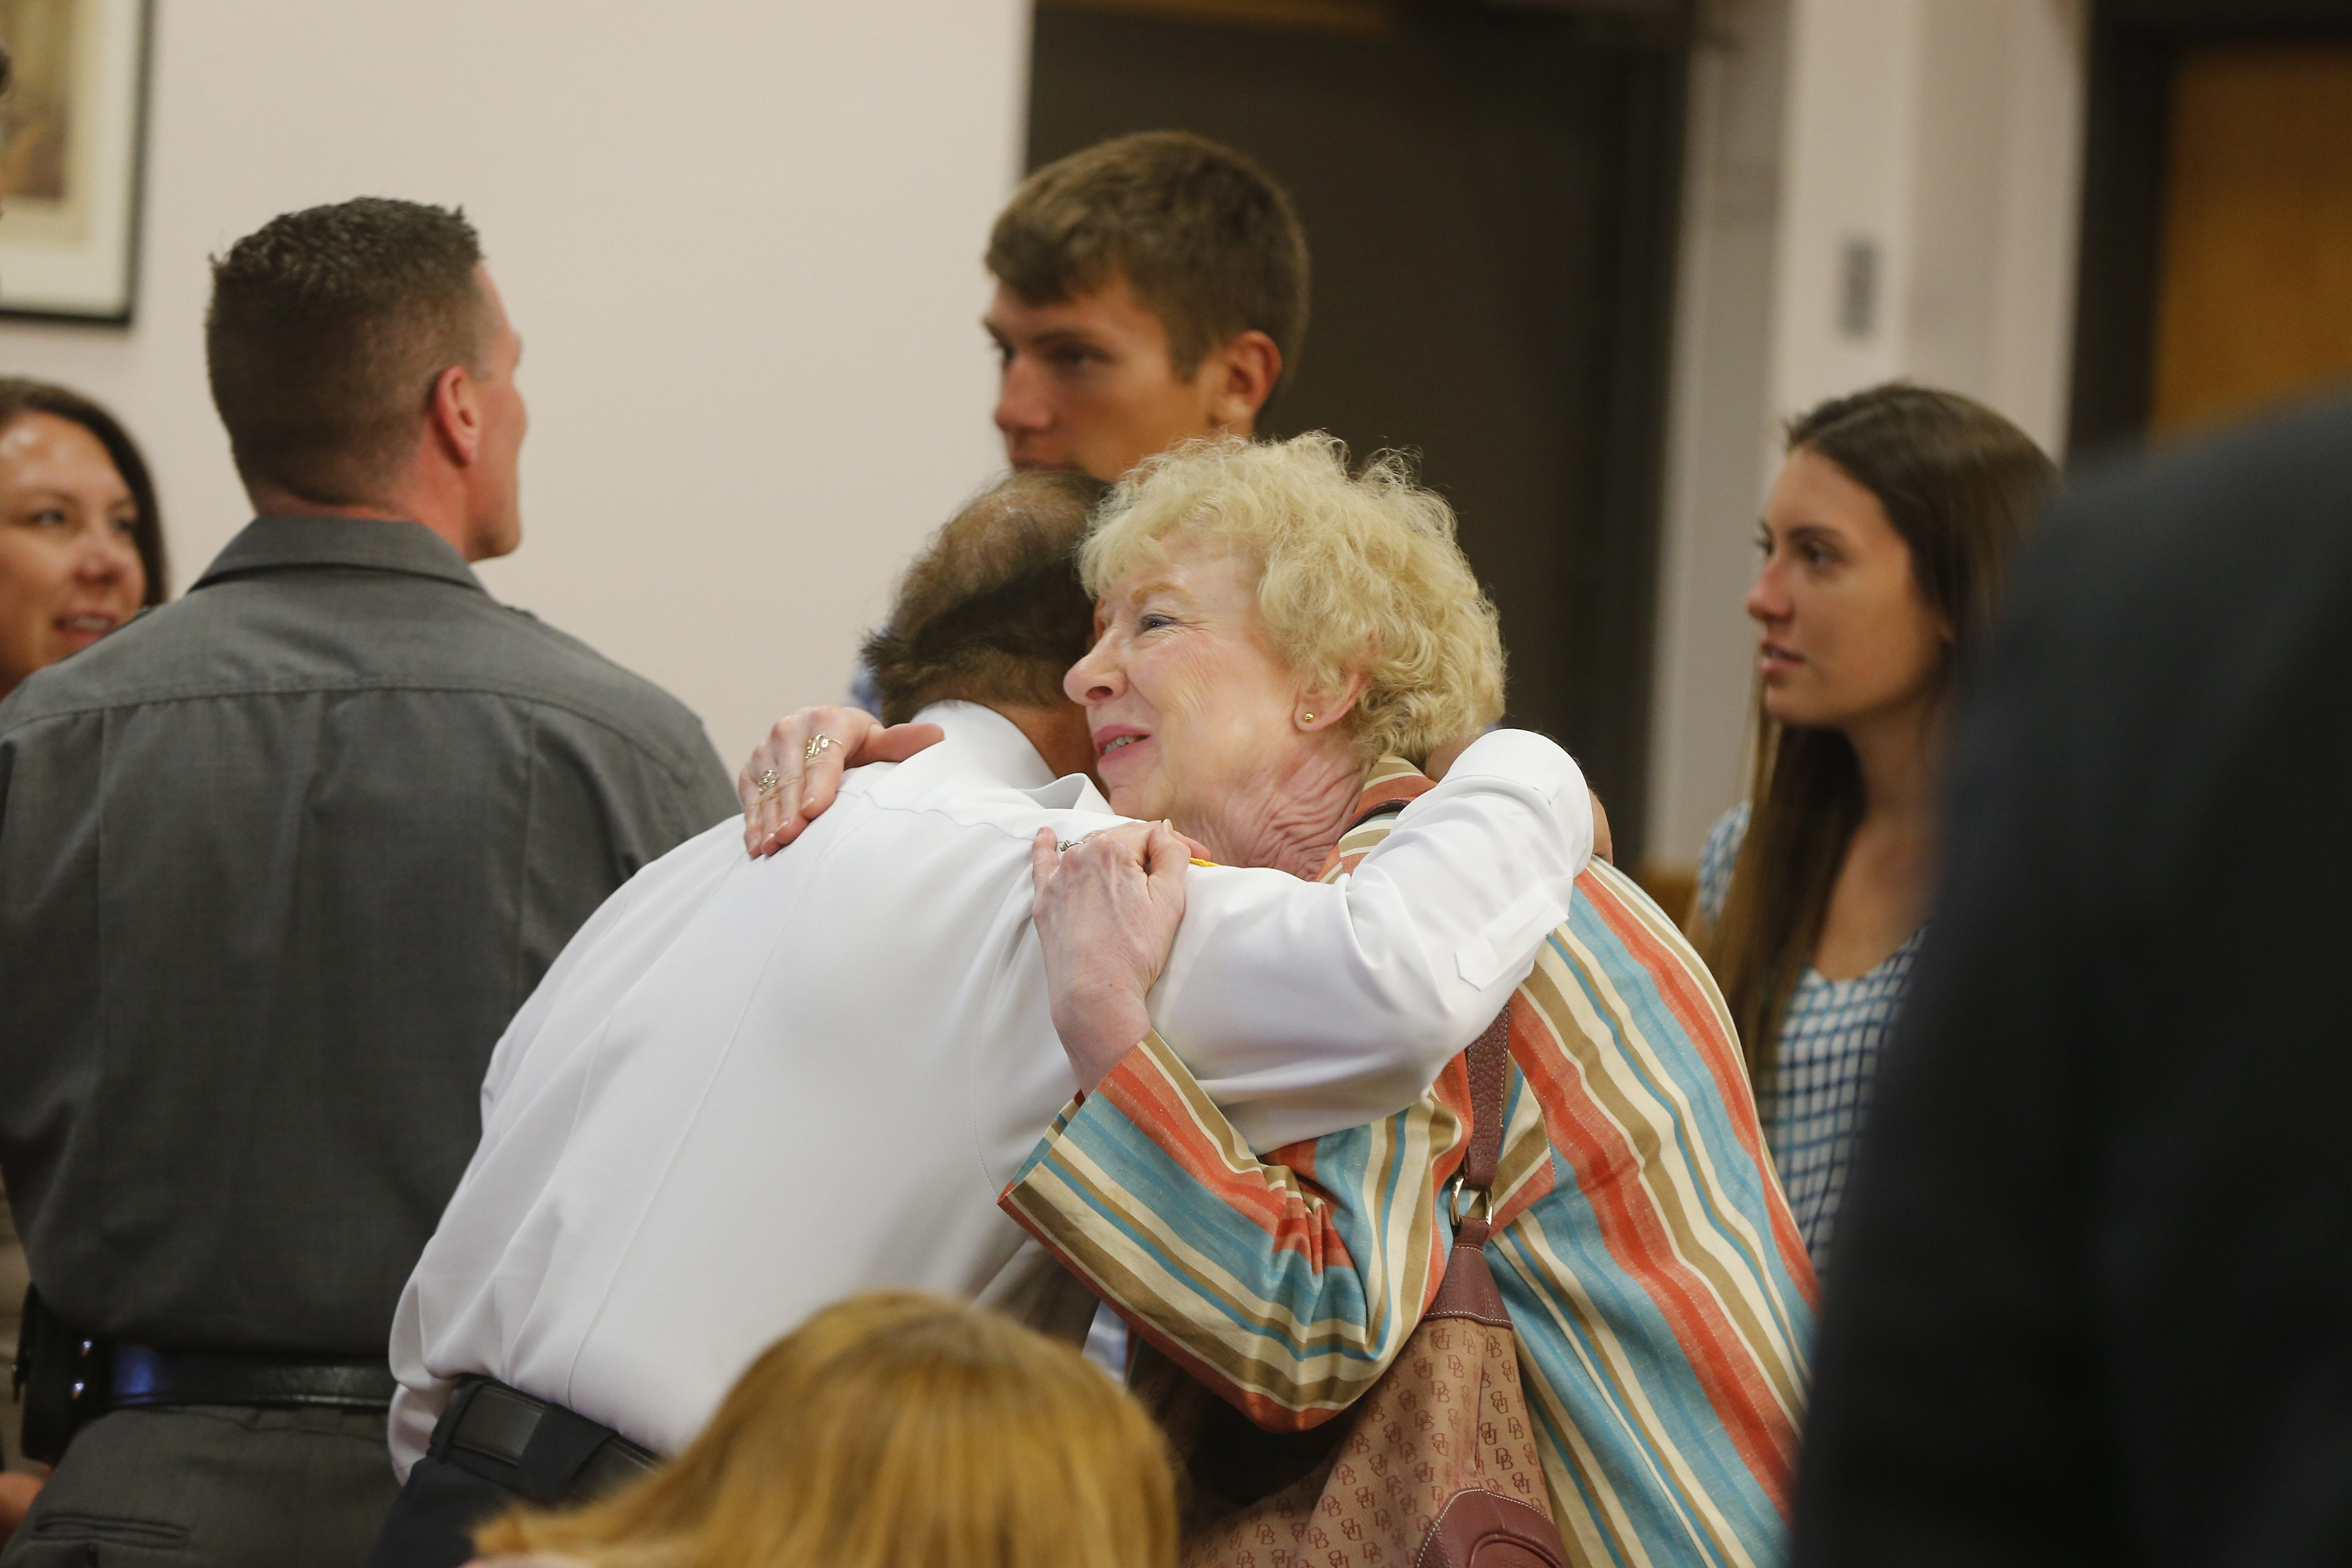 Evans Police Chief Ernest Masullo hugs Charlotte Moss, mother of Barry Moss, after a press conference at the Evans Town Hall on Tuesday. (Mark Mulville/Buffalo News)